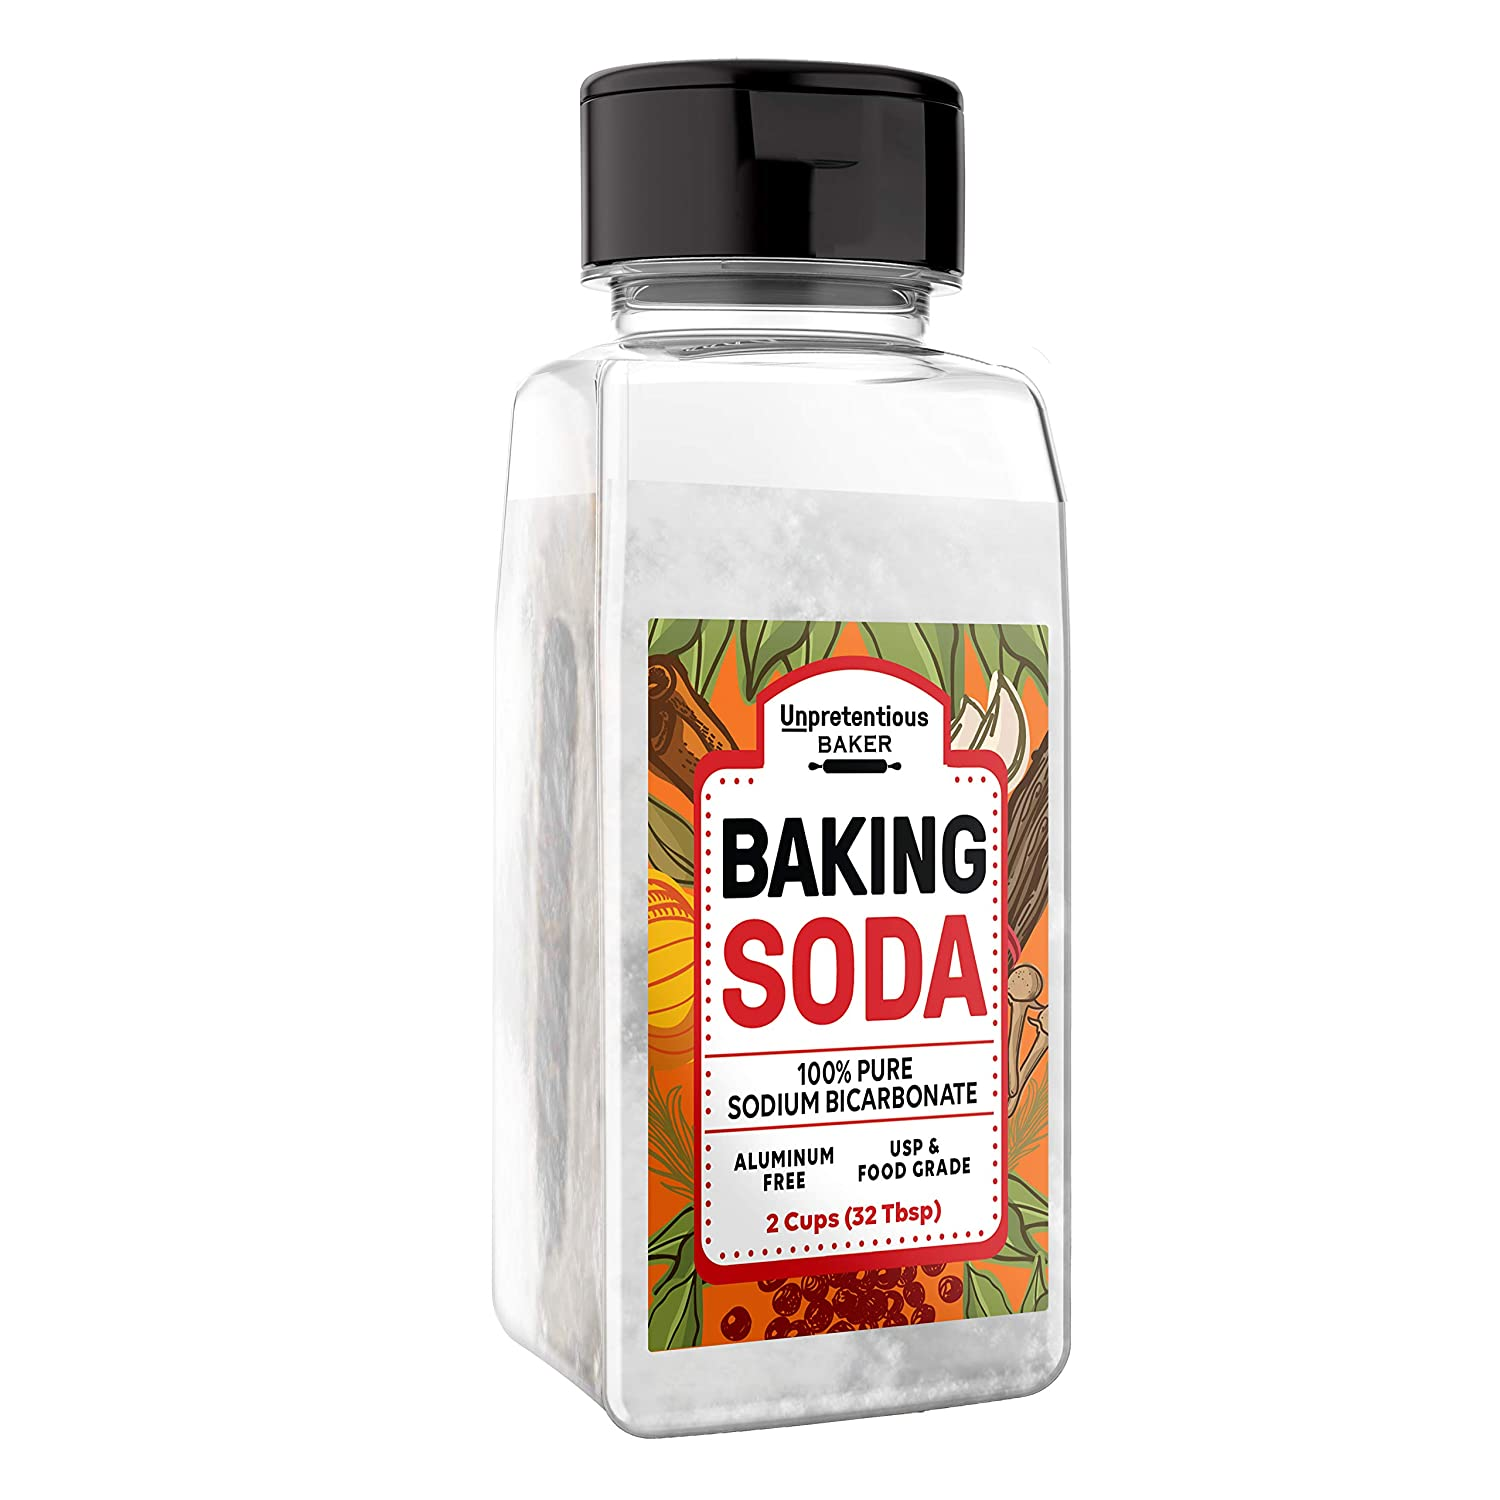 Baking Soda (2 Cups) Natural Cooking & Baking Leavening Agent, Convenient Dual-Purpose Shaker/Open Lid